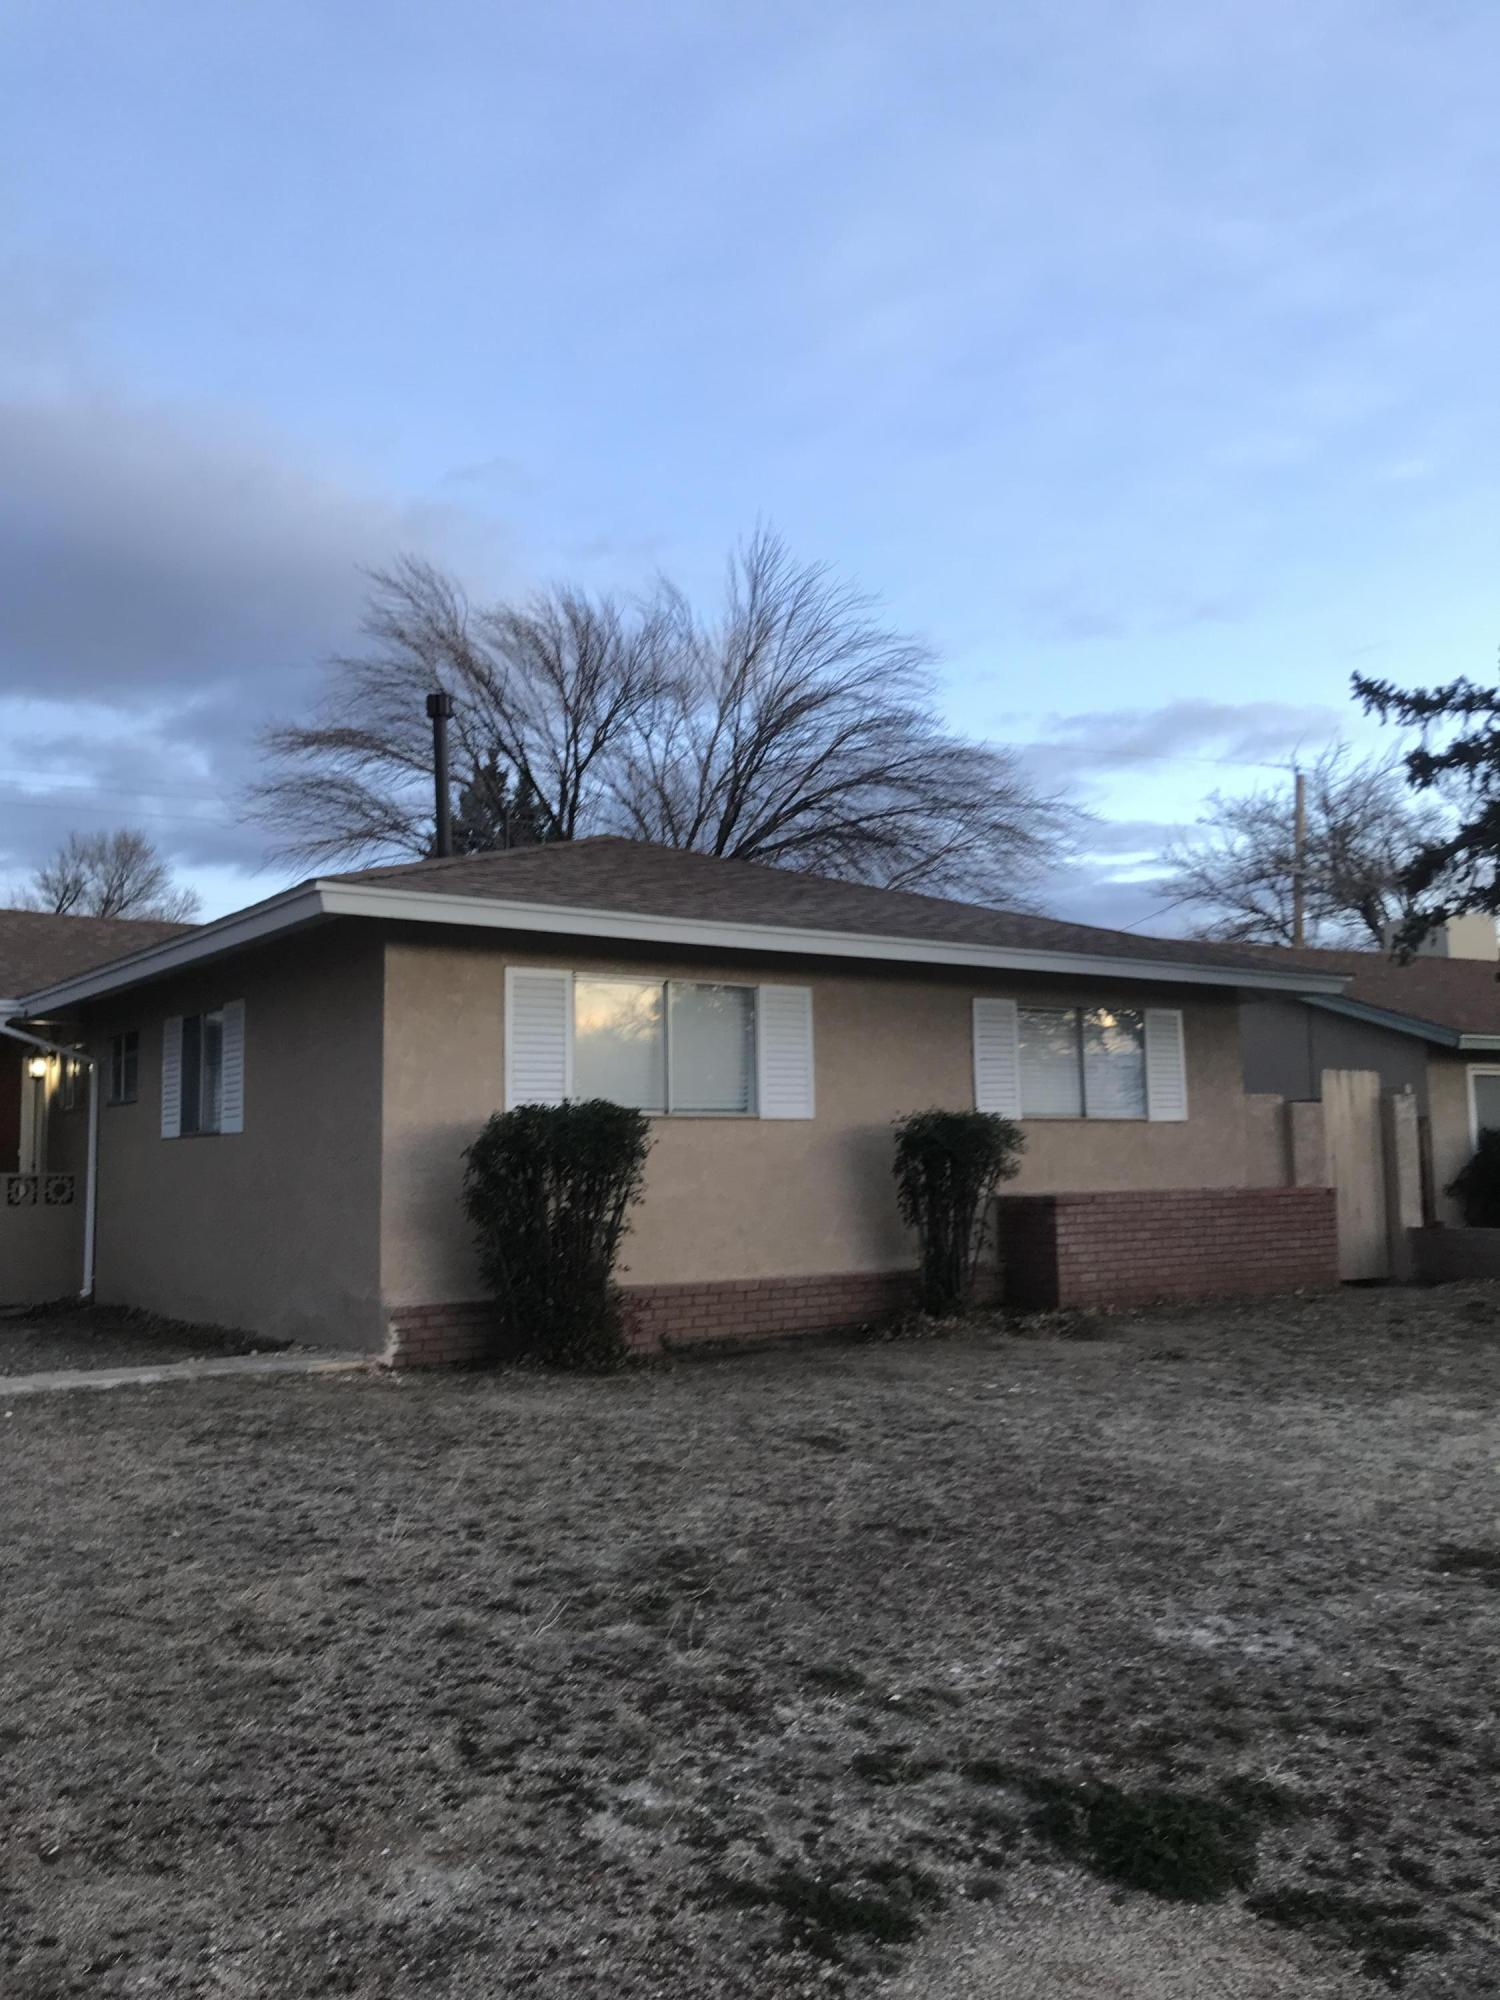 Excellent opportunity to own a newly remodeled home in a great location! Great 3 bed 2 bath home with new paint, carpet and appliances. Come see today!